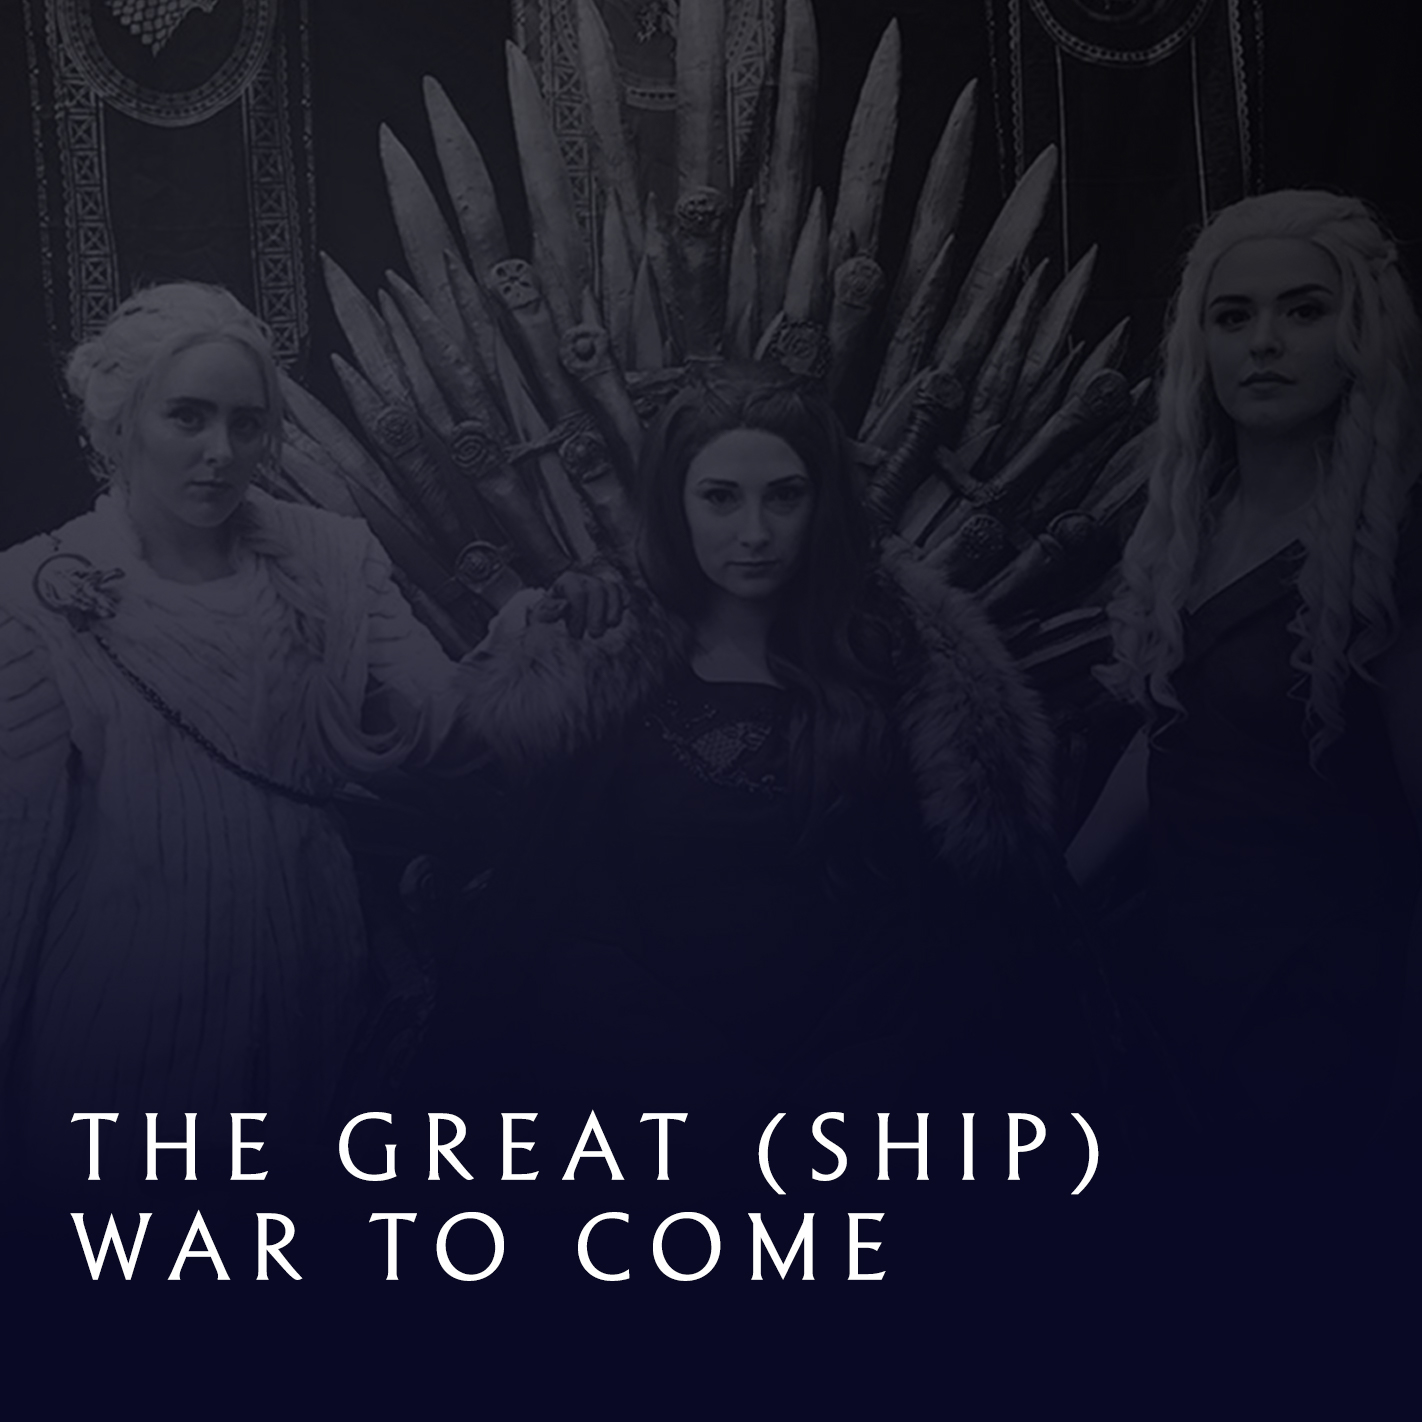 Join the ladies of Scavenger Squad Cosplay to discuss one of the most divisive ship wars currently wreaking havoc on the GoT/ASoIaF fandom: #Jonsa vs. #Jonerys